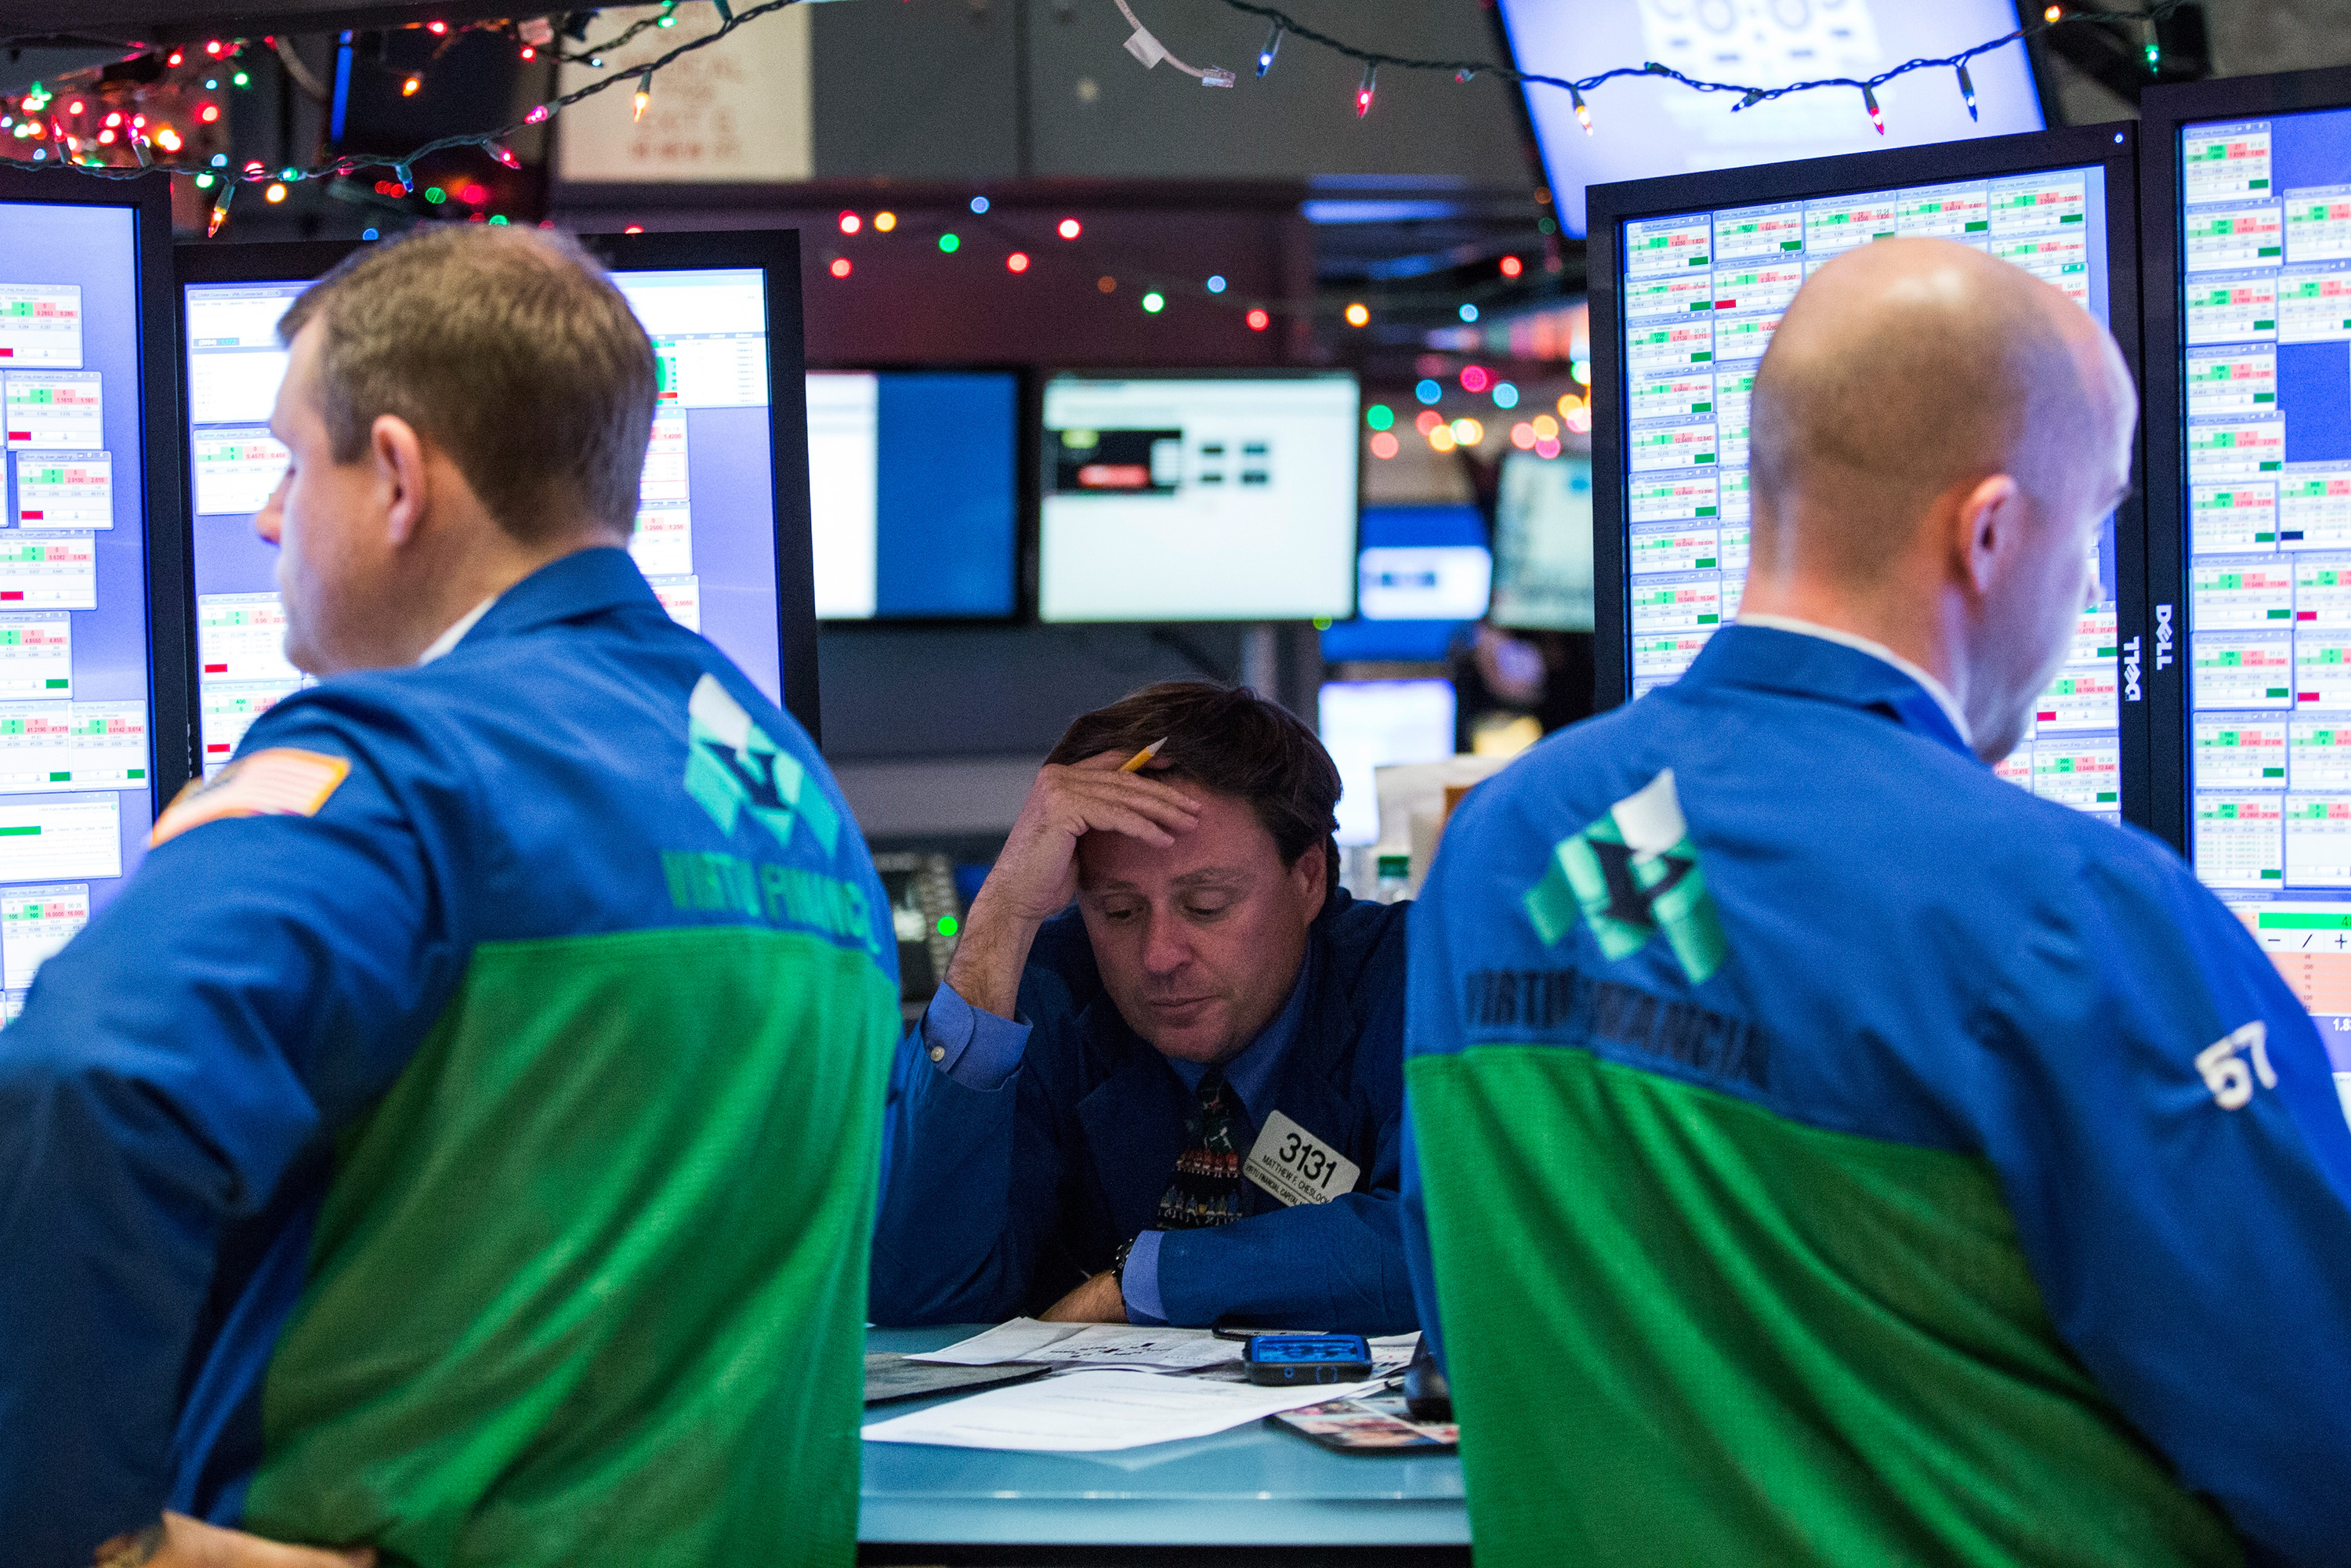 Dow Jones Industrial Average Closes Down 300 Points